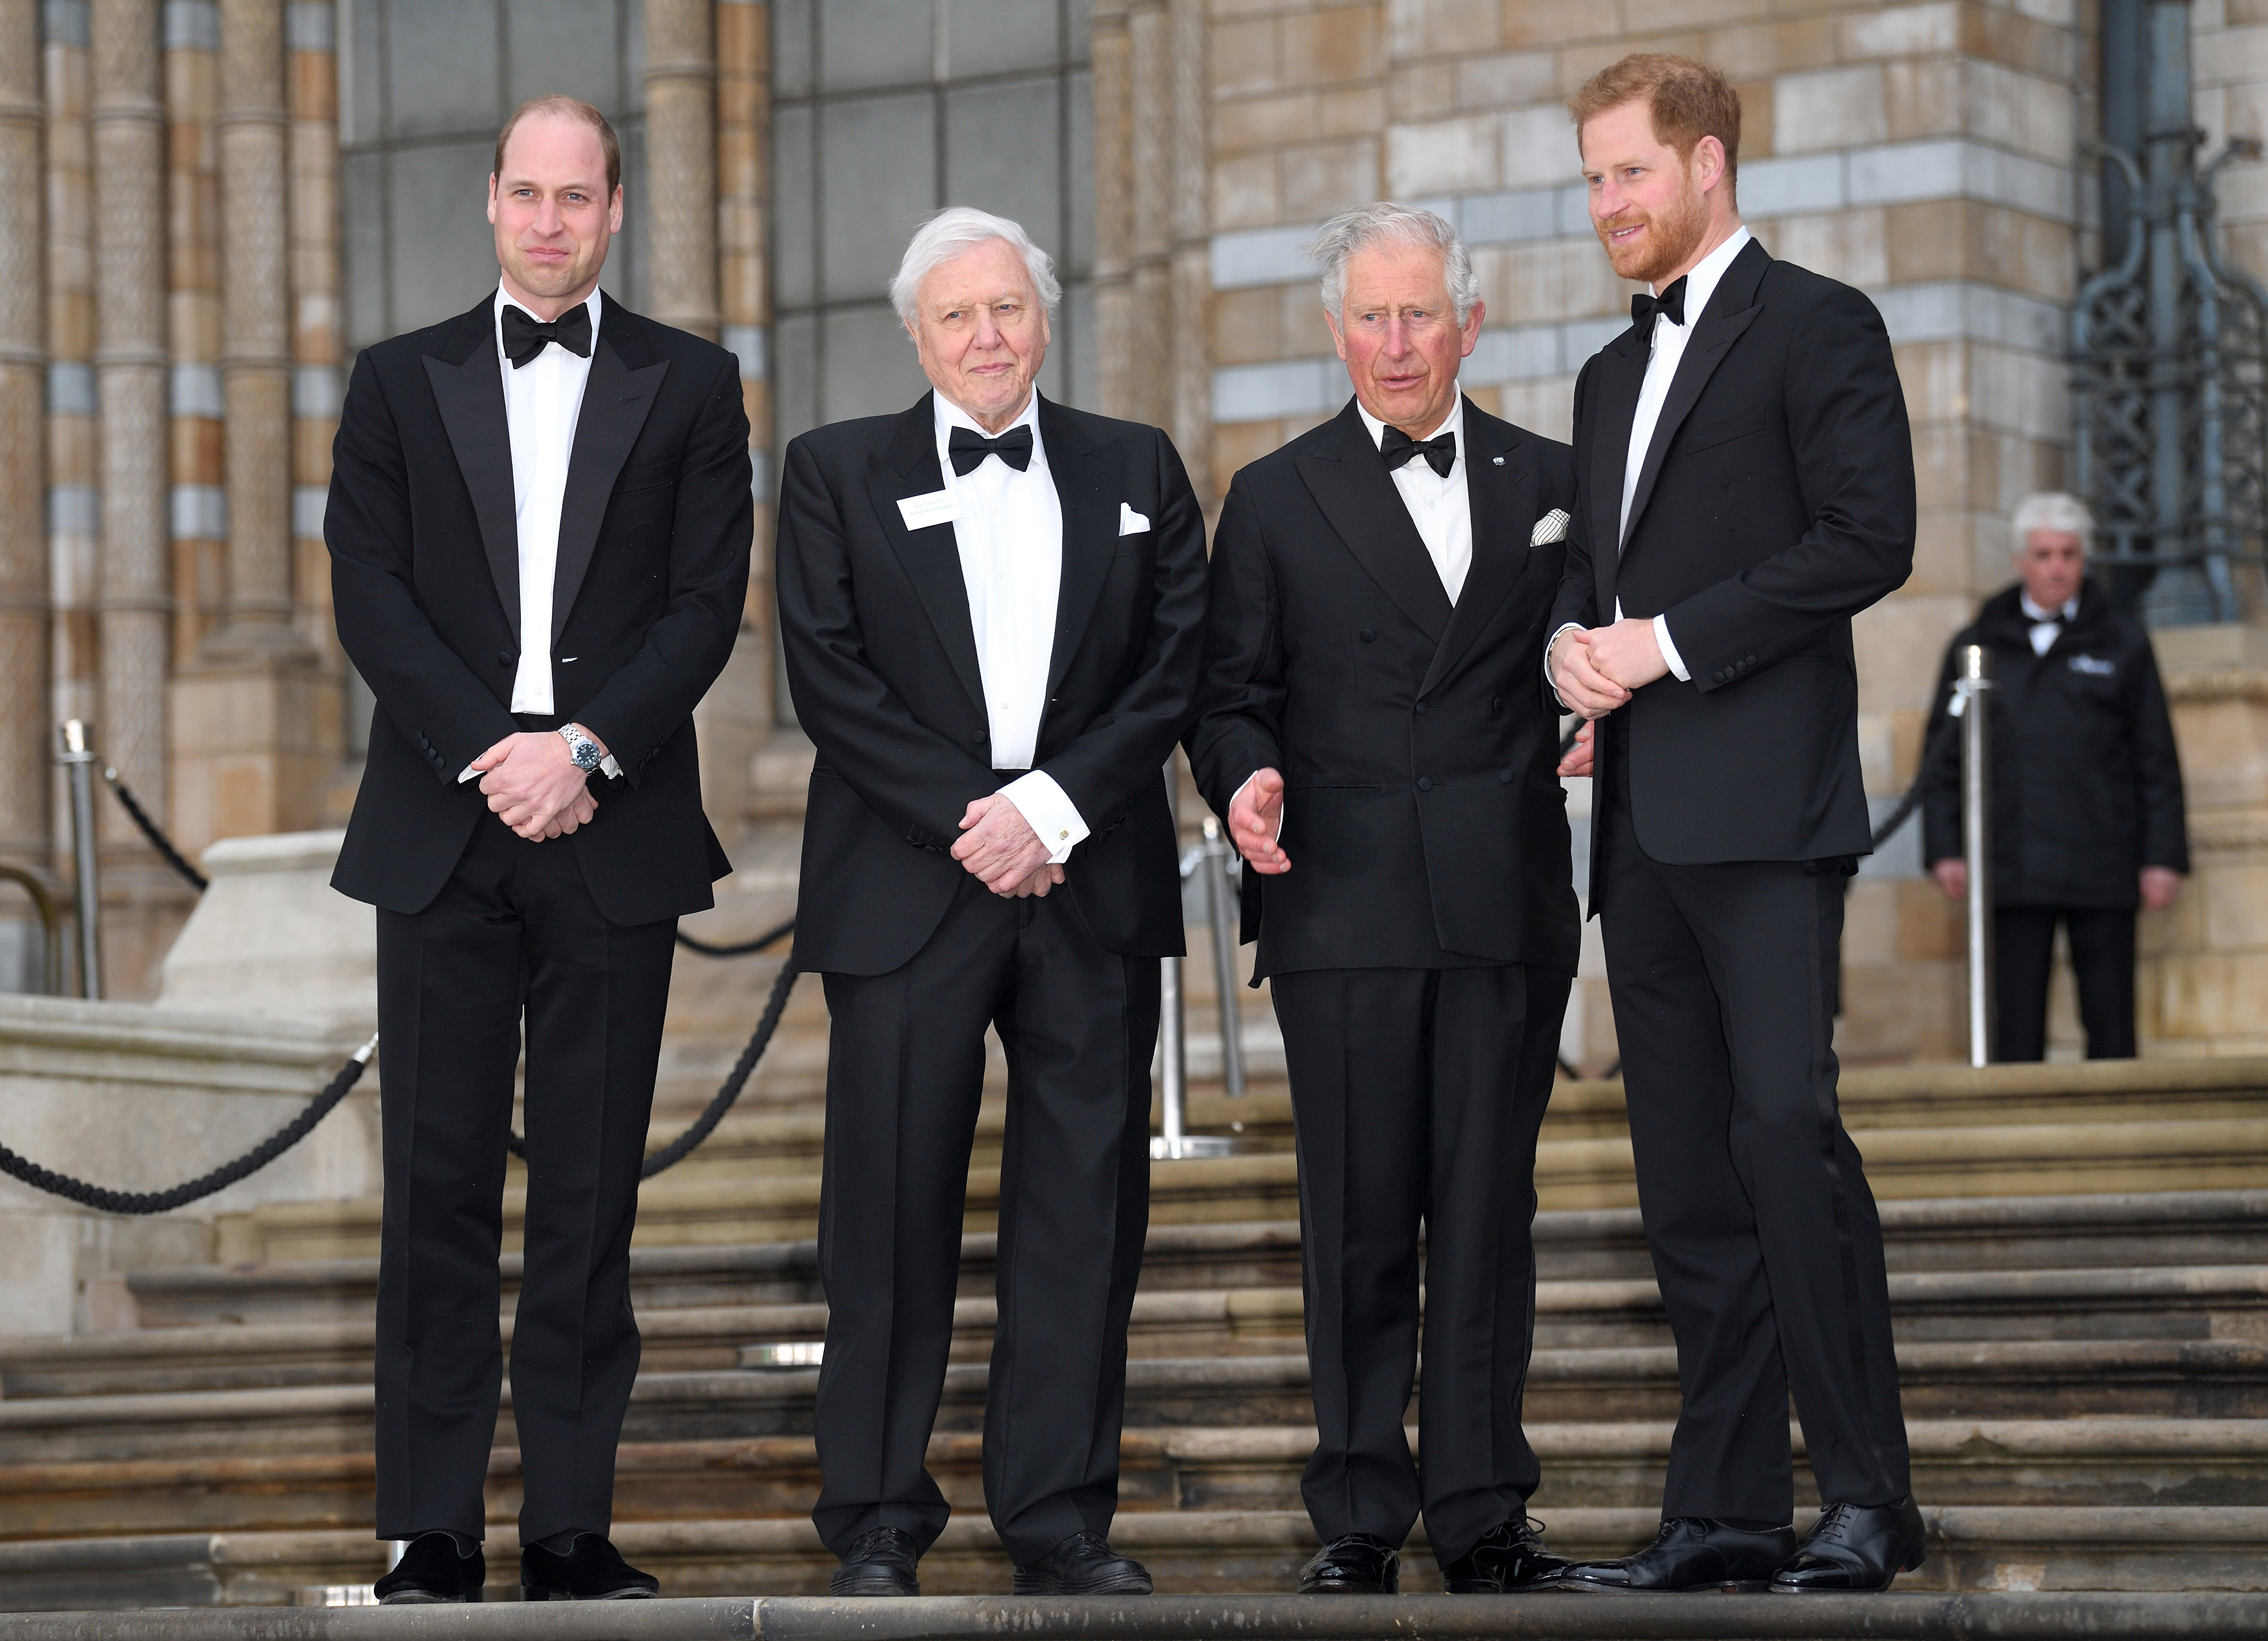 """Prince William, Sir David Attenborough, Prince Charles, and Prince Harry attend the """"Our Planet"""" global premiere at Natural History Museum on April 04, 2019 in London, England.   Source: Getty Images"""